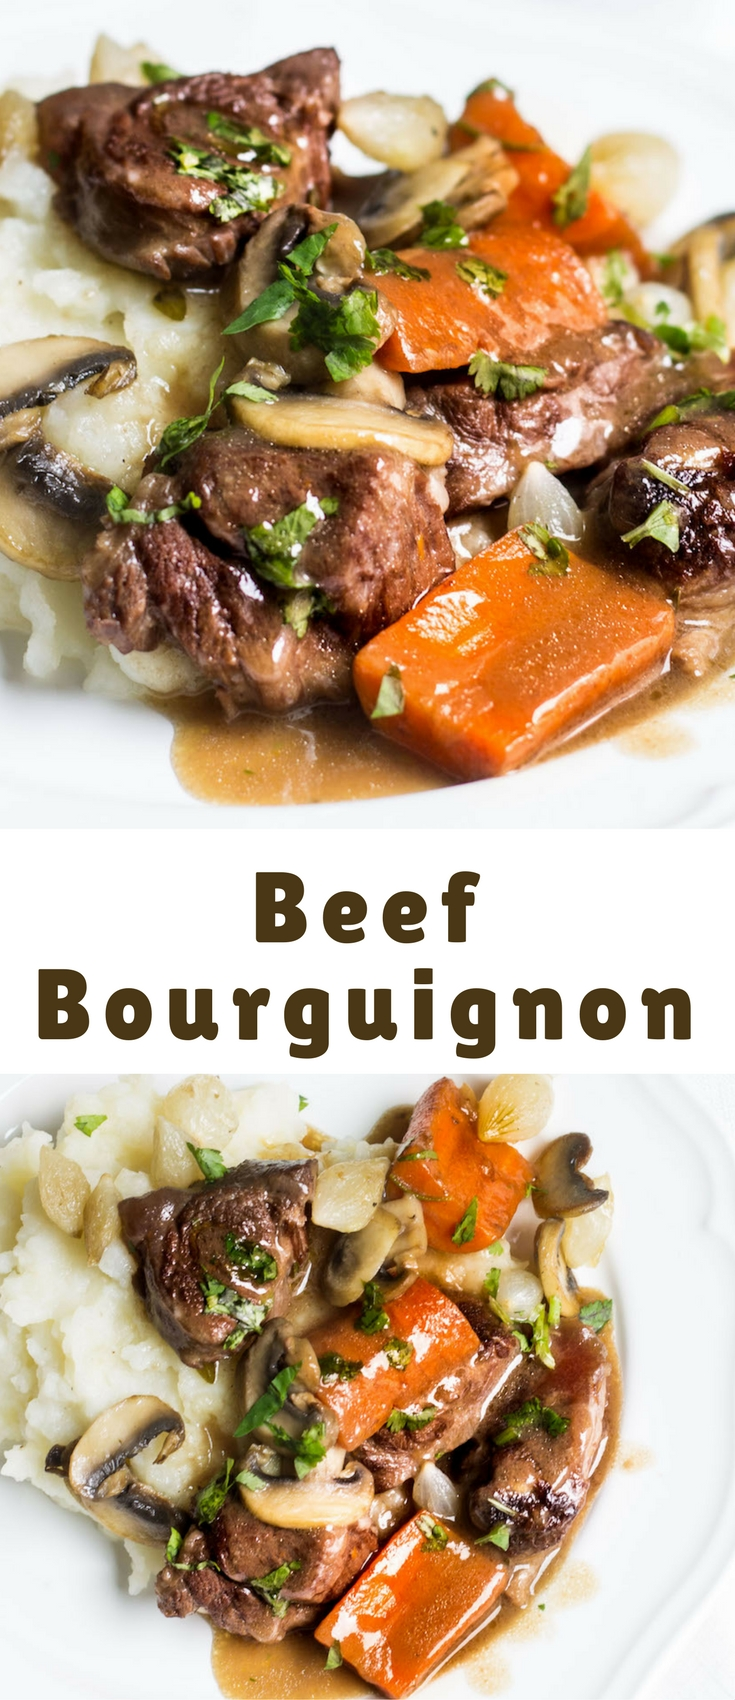 Beef bourguignon is a stew consisting of beef that has been slow-cooked in red wine, beef broth, and infused with the flavors of garlic, onion, and herbs.